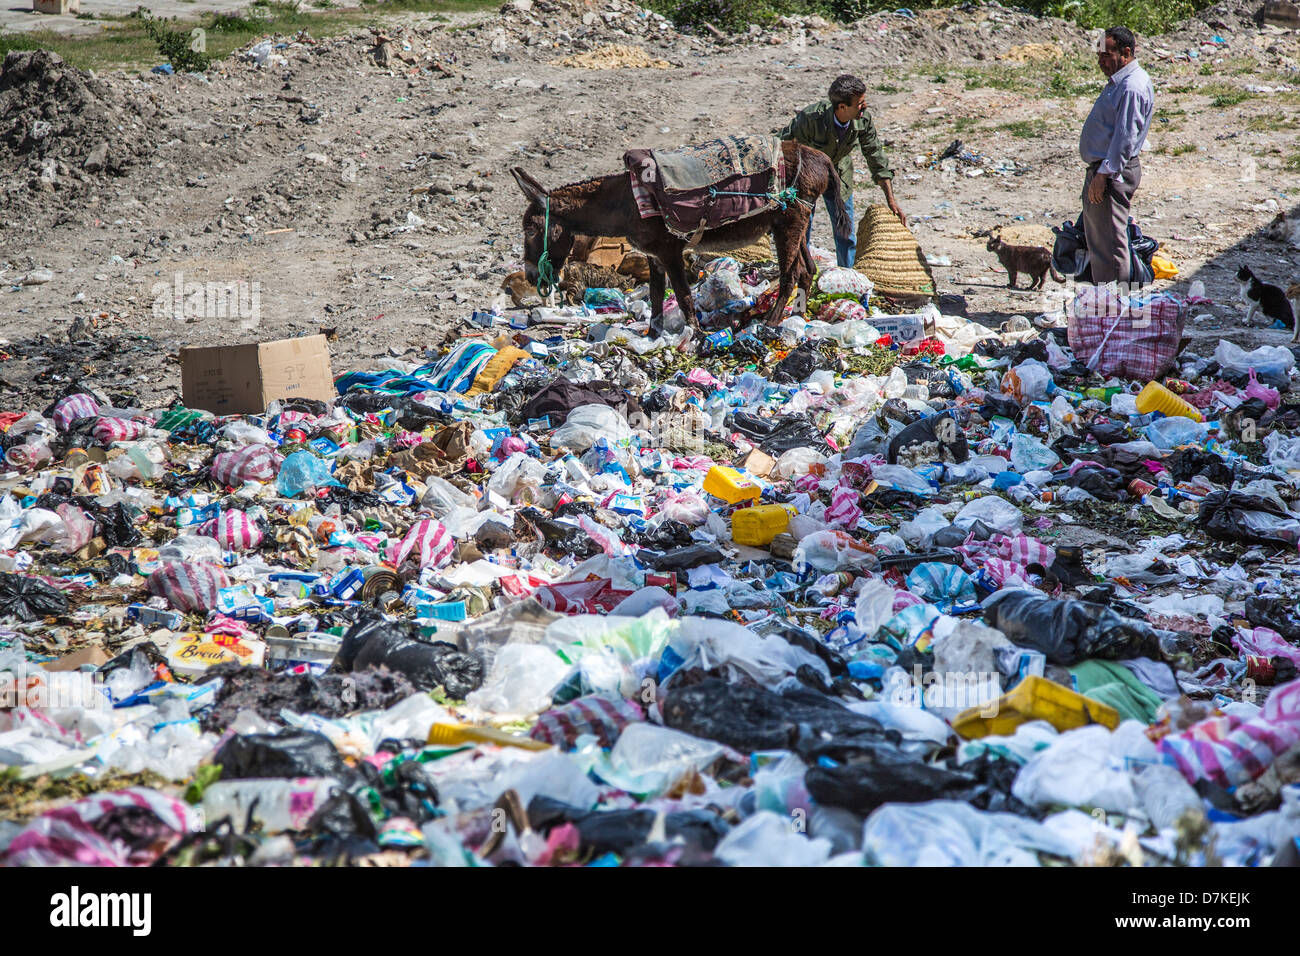 Dumping garbage in Le Kef Tunisia - Stock Image